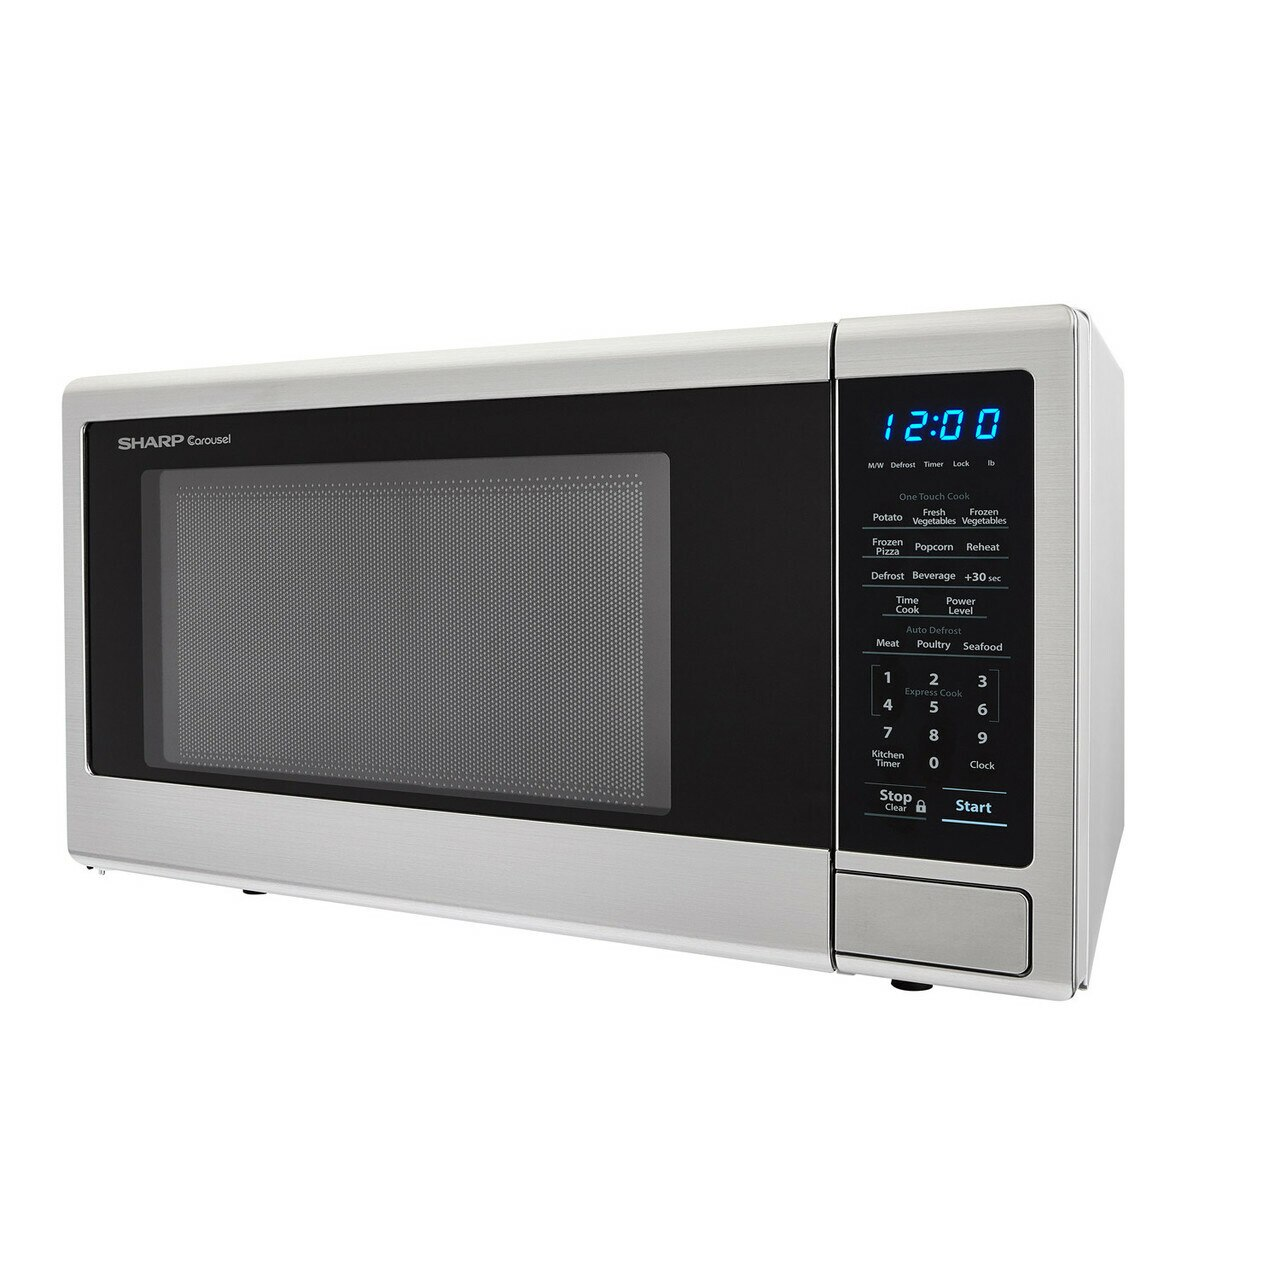 1.1 cu. ft. Sharp Stainless Steel Countertop Microwave (SMC1132CS) – left side view